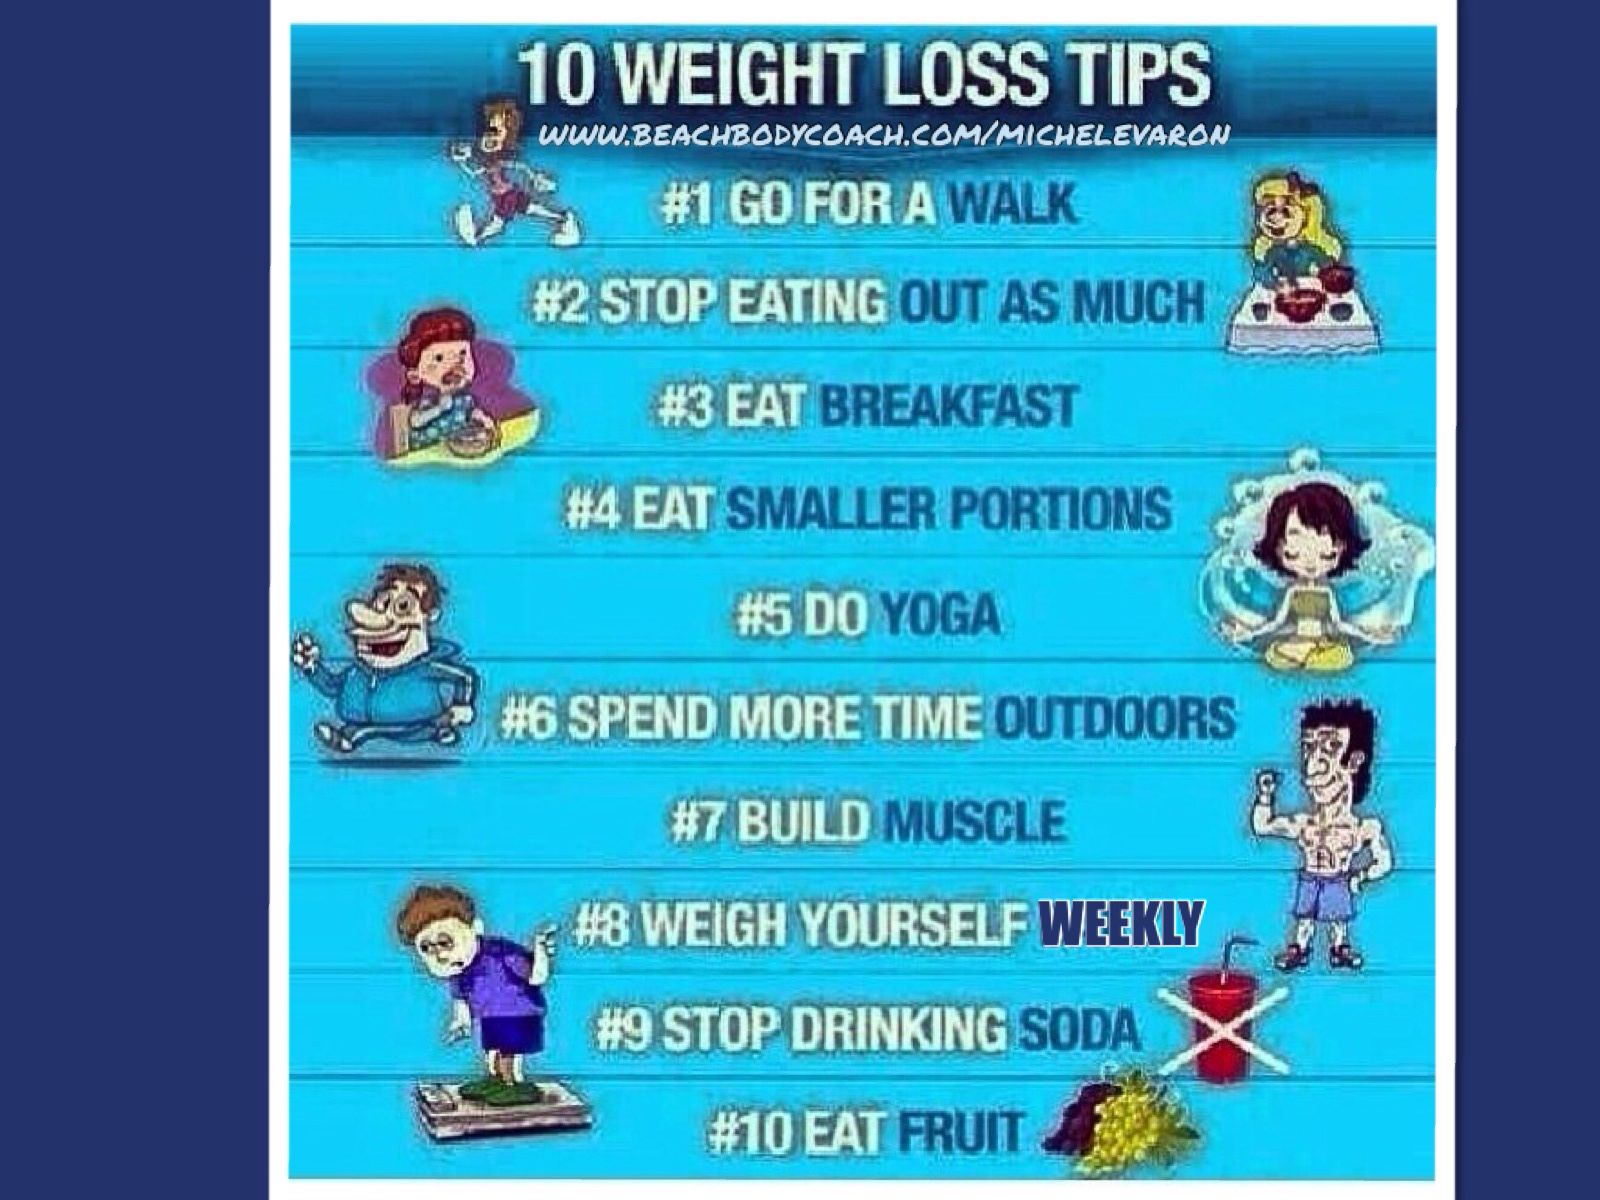 Some #tips to help you out this week on your #weightlossjourney